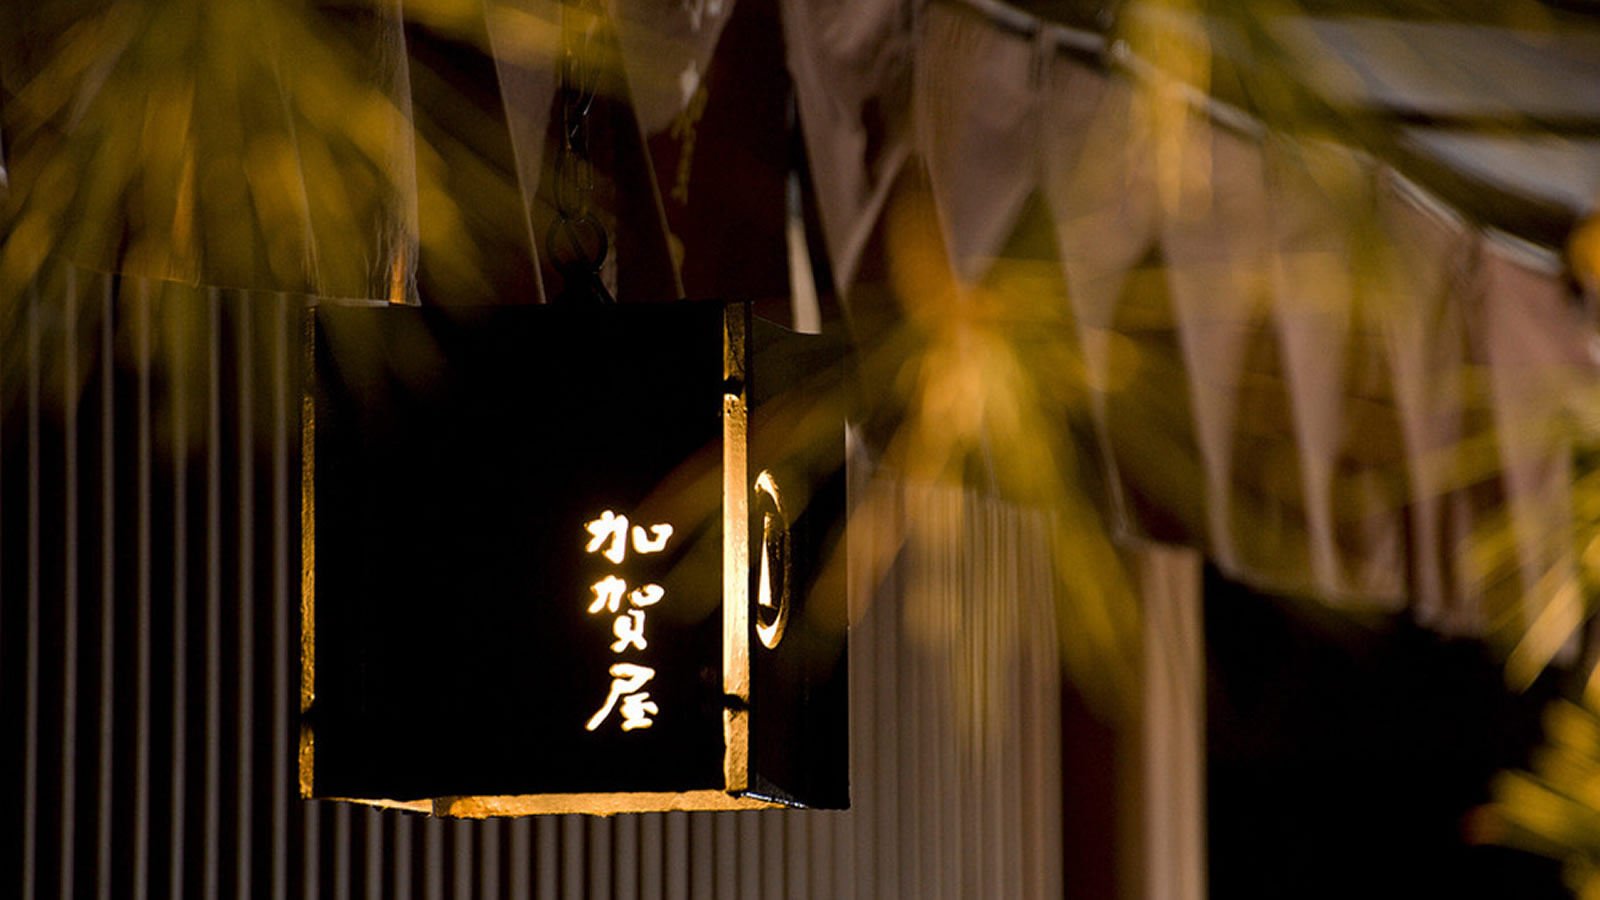 Top Ryokan : 9 hôtels traditionnels japonais à travers le Japon